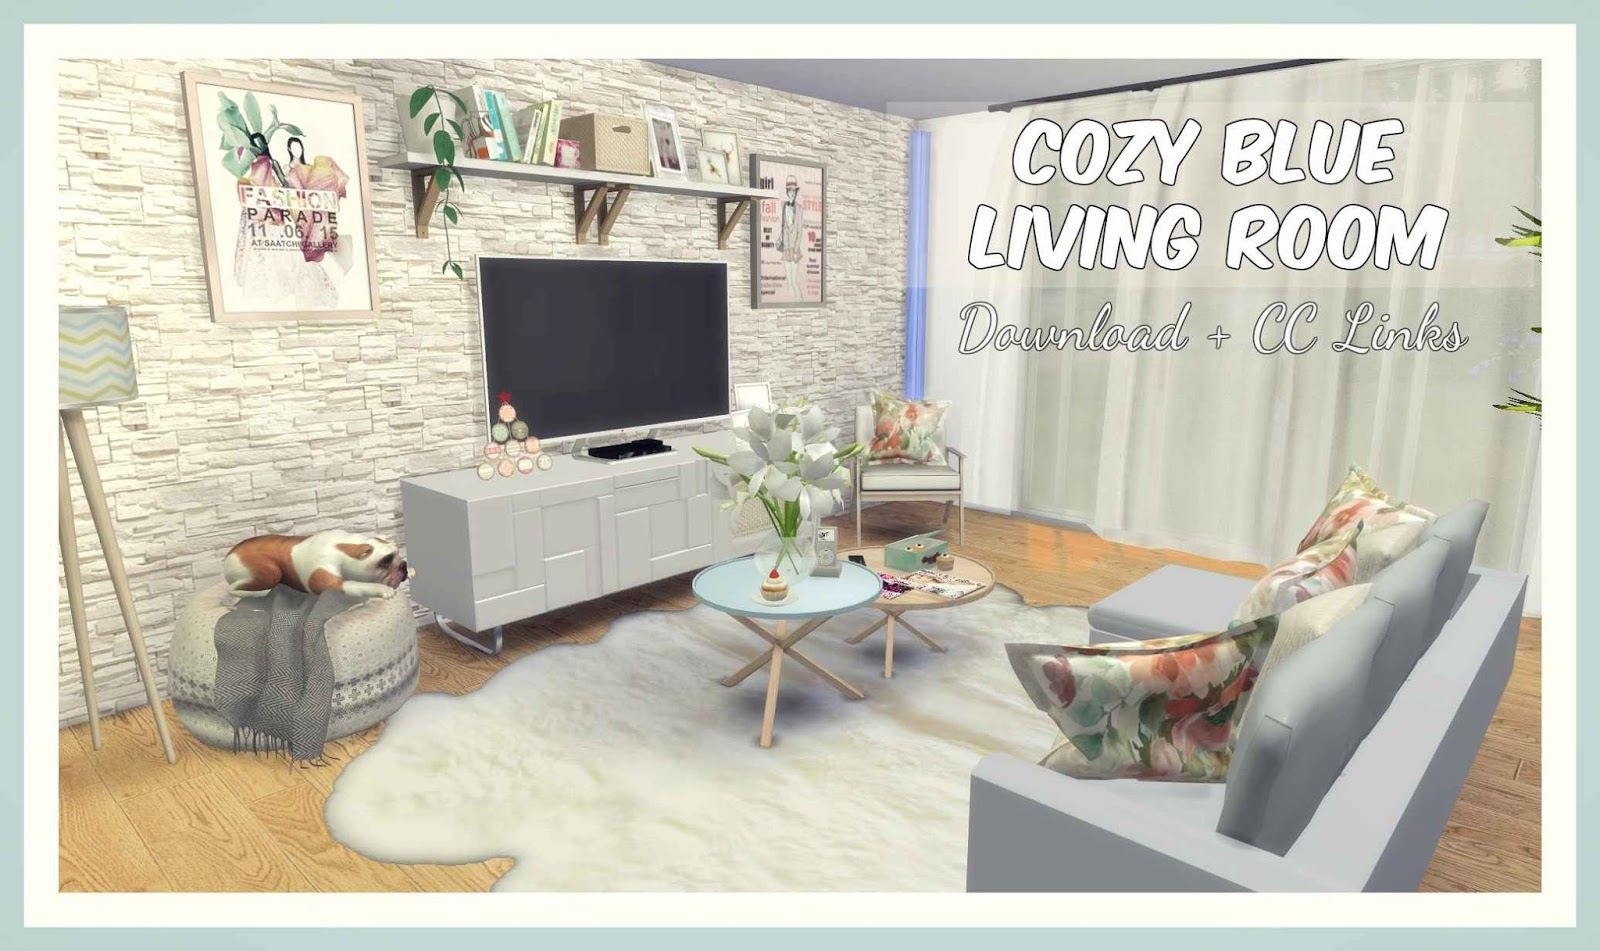 Sims 4 cozy blue living room download cc creators for Living room 4 pics 1 word